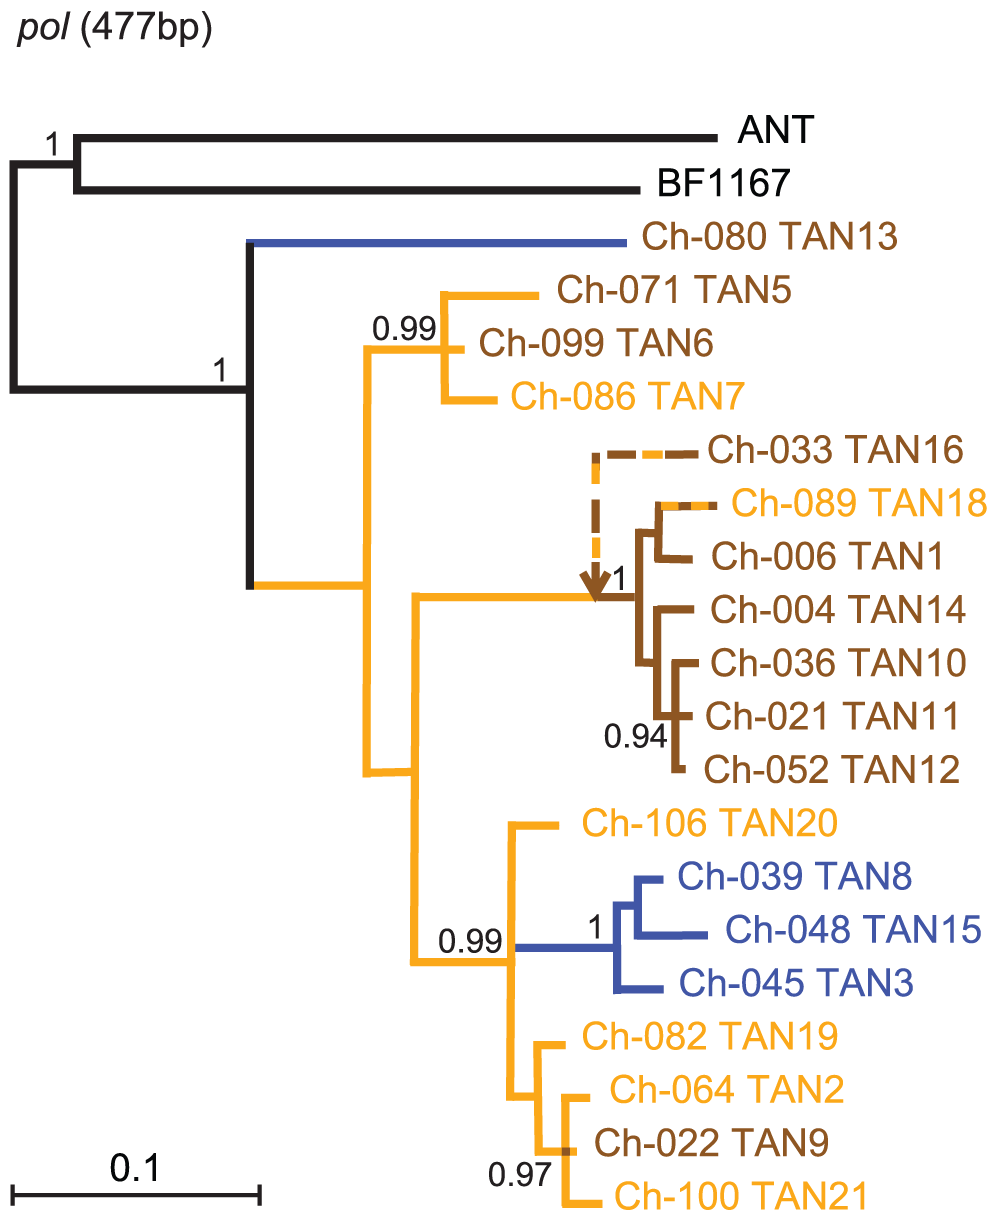 Phylogeny of SIVcpz in Gombe.